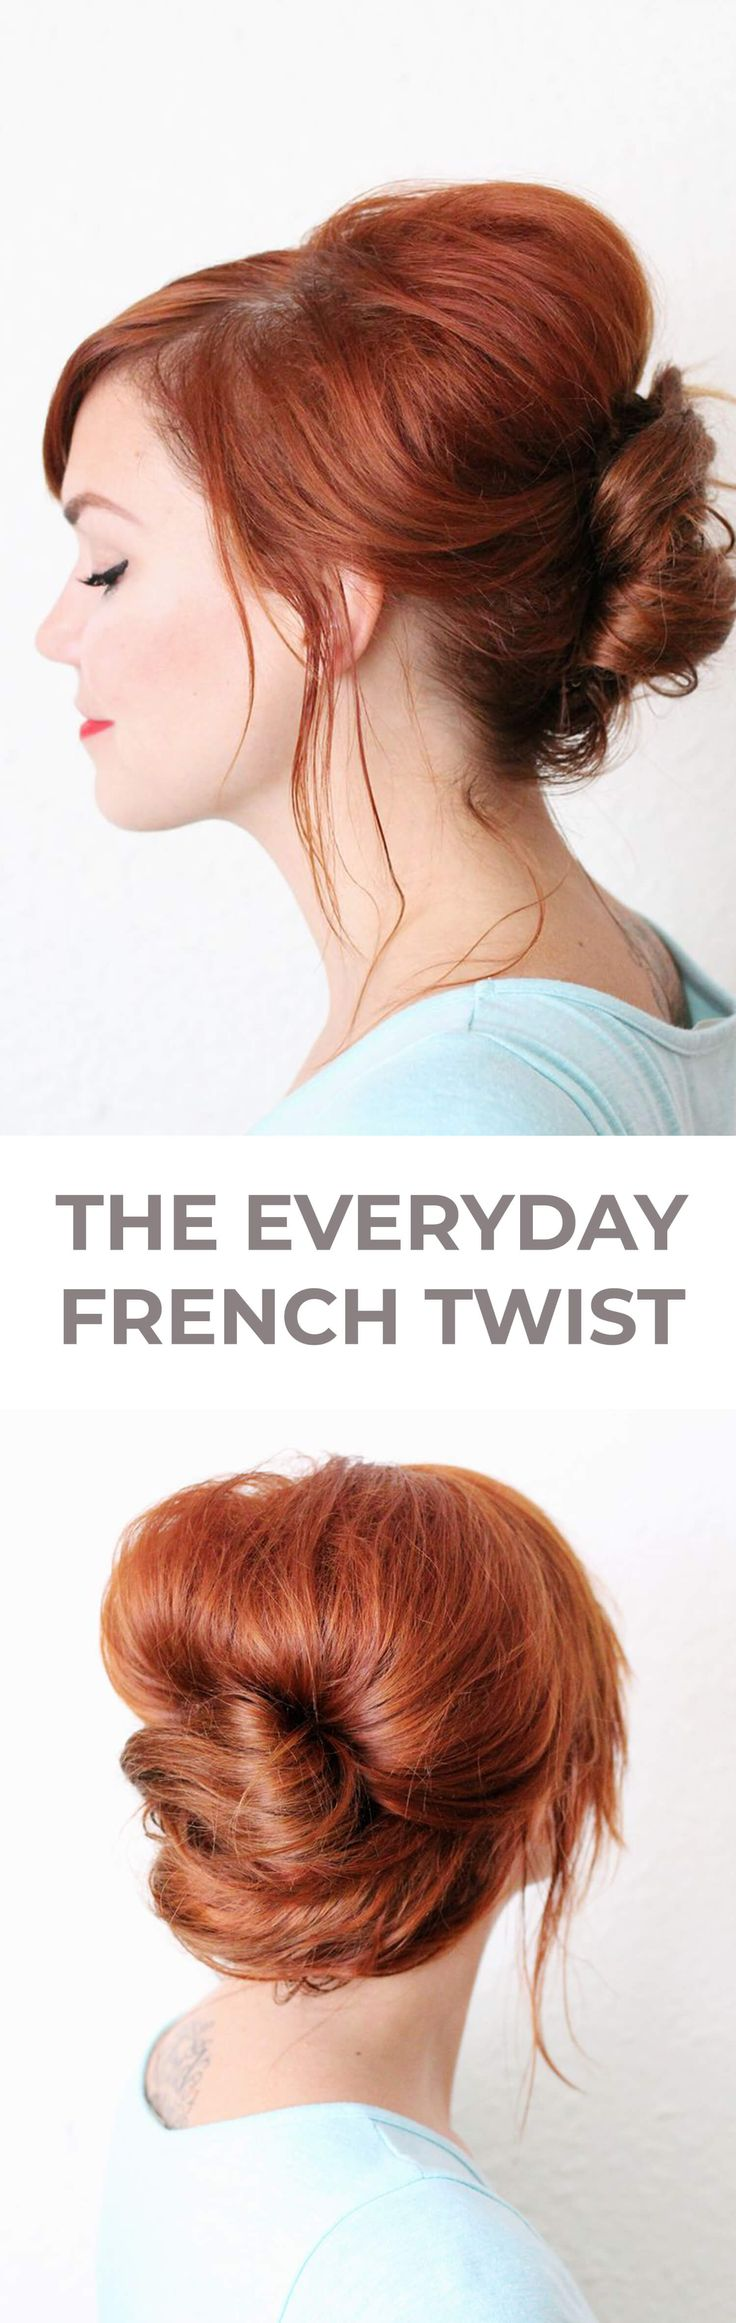 Everyday french twist hair tutorial